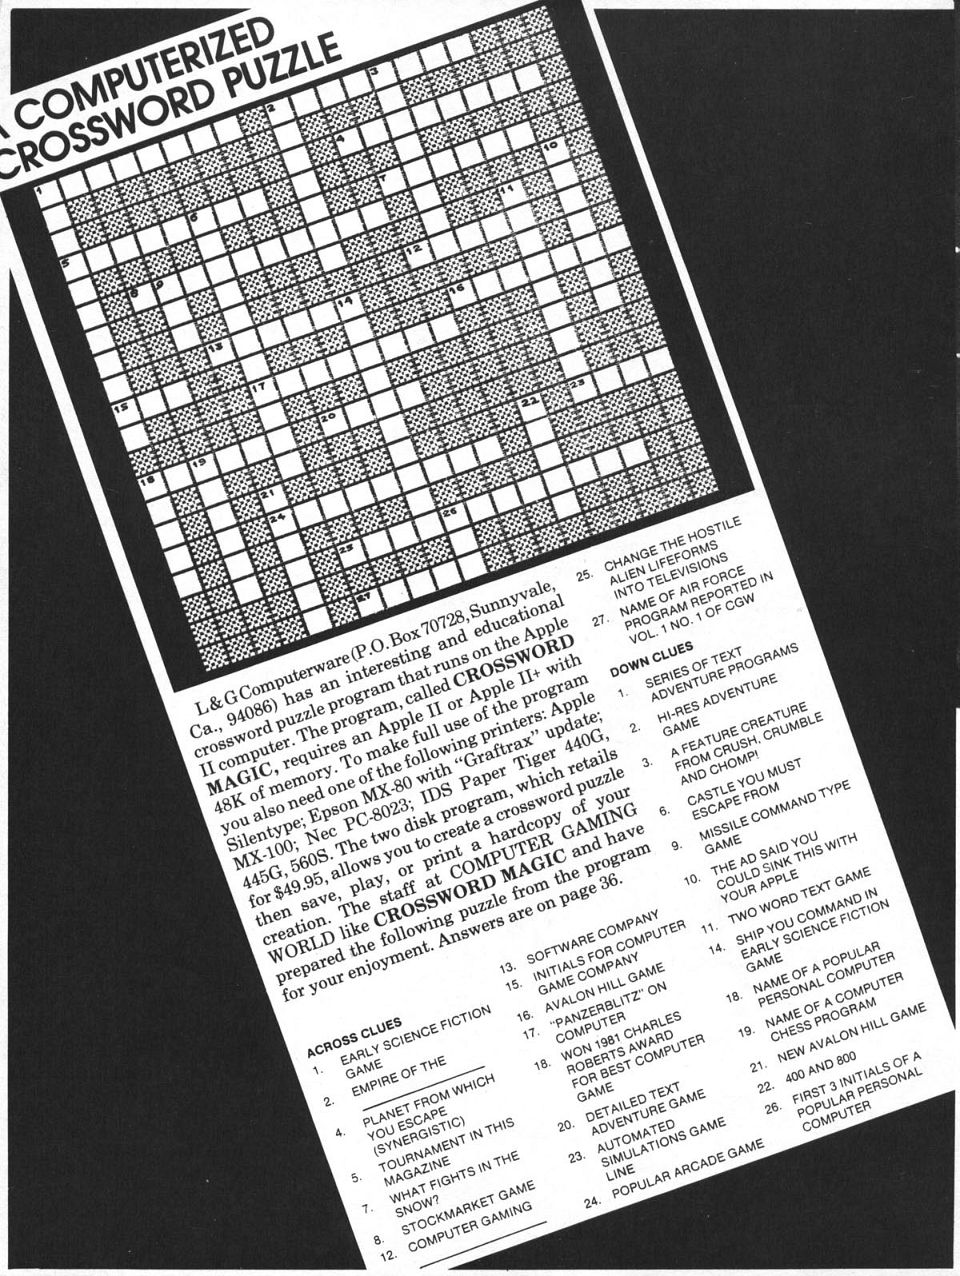 A Computerized Crossword Puzzle